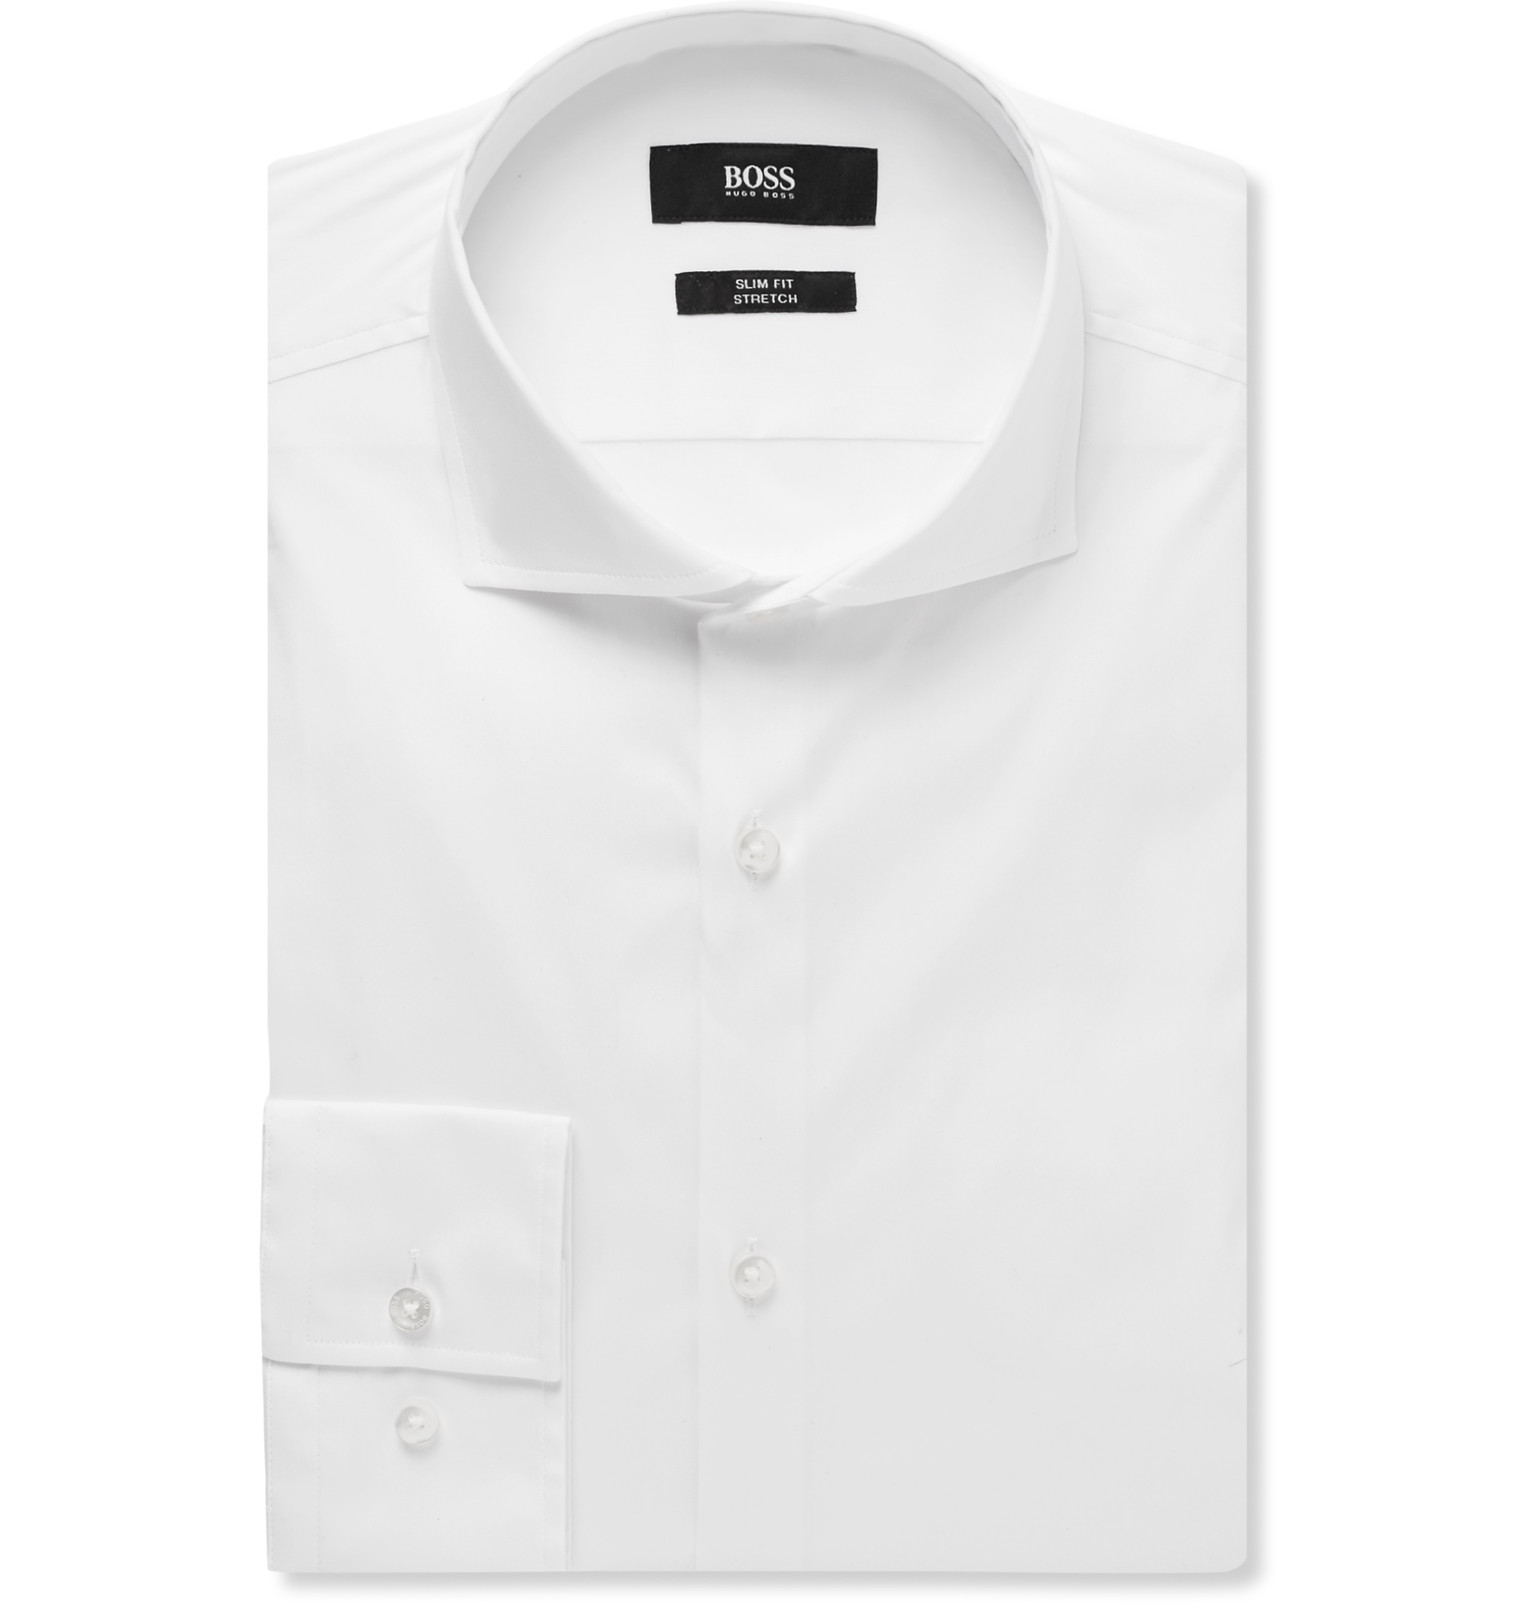 679d70de Hugo Boss Slim Fit Dress Shirt White - DREAMWORKS